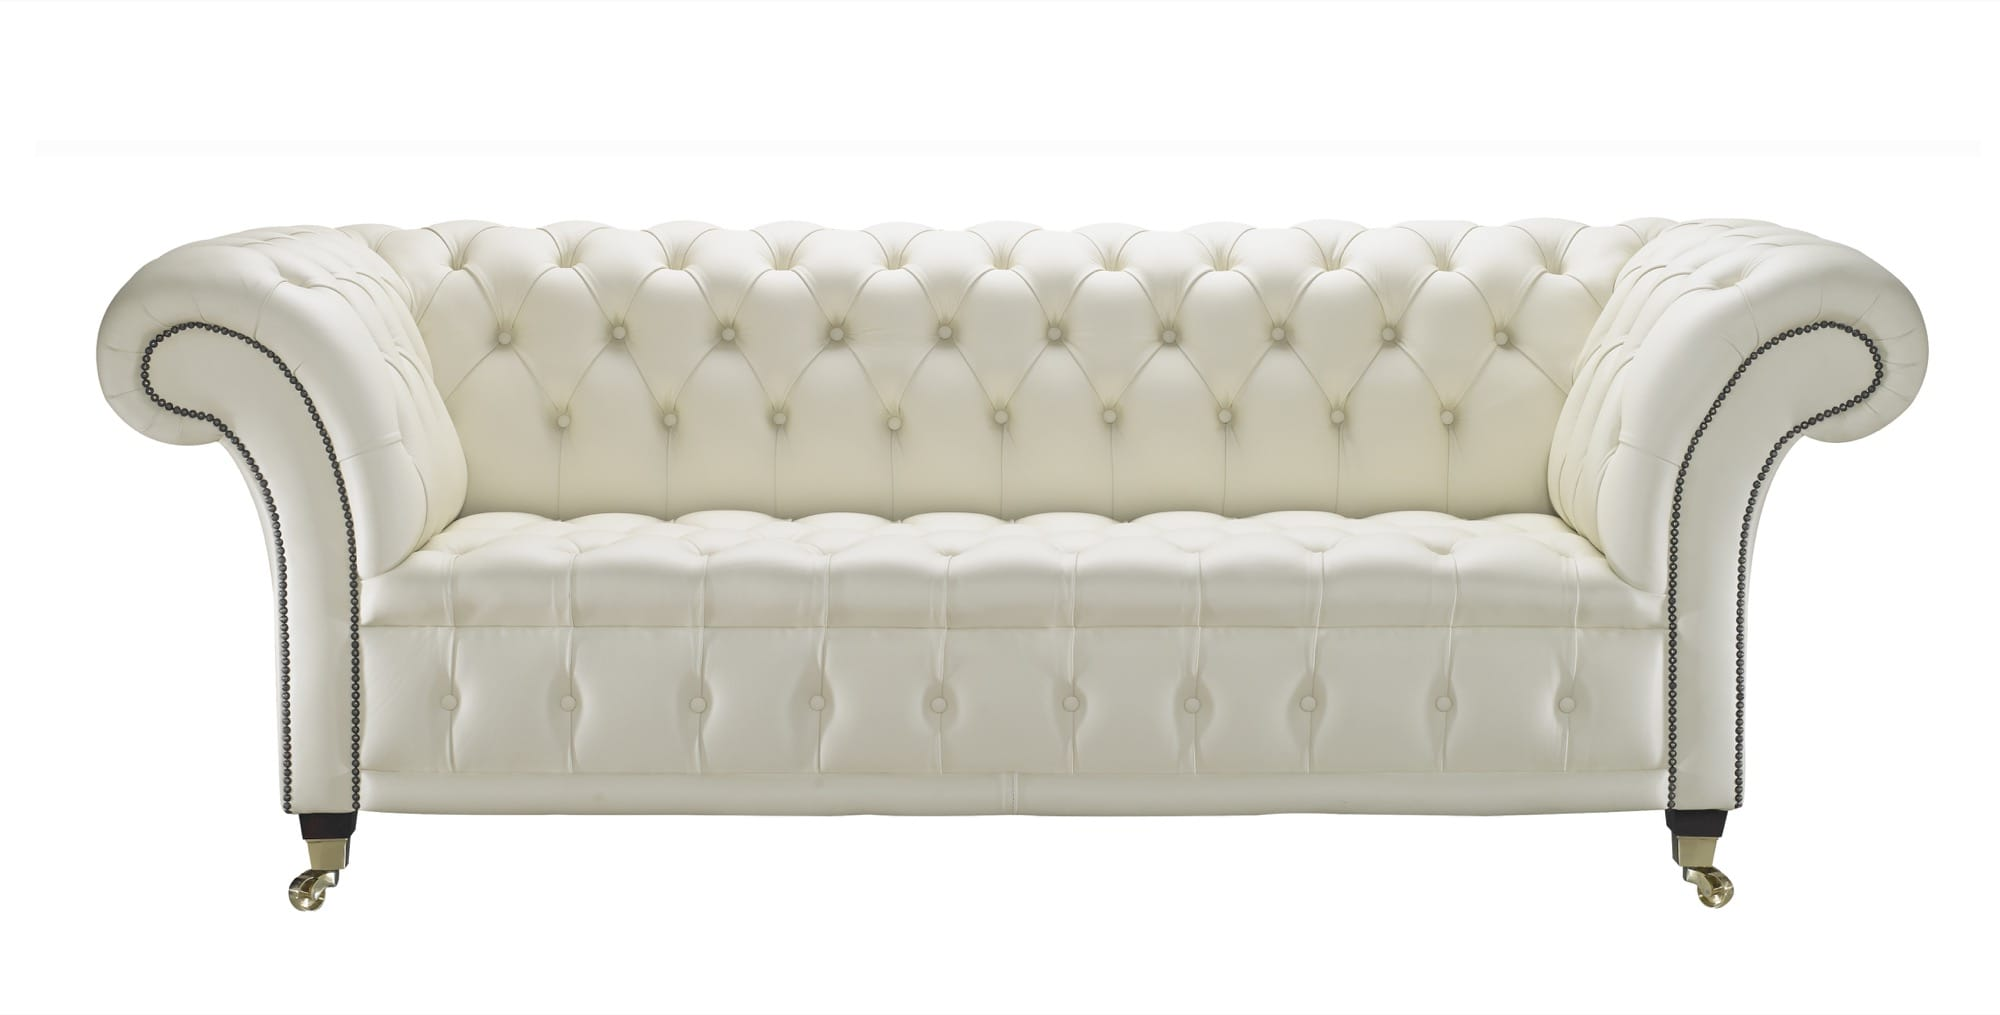 Elegant Venetia Cream Leather Chesterfield Sofa ... cream leather chesterfield sofa